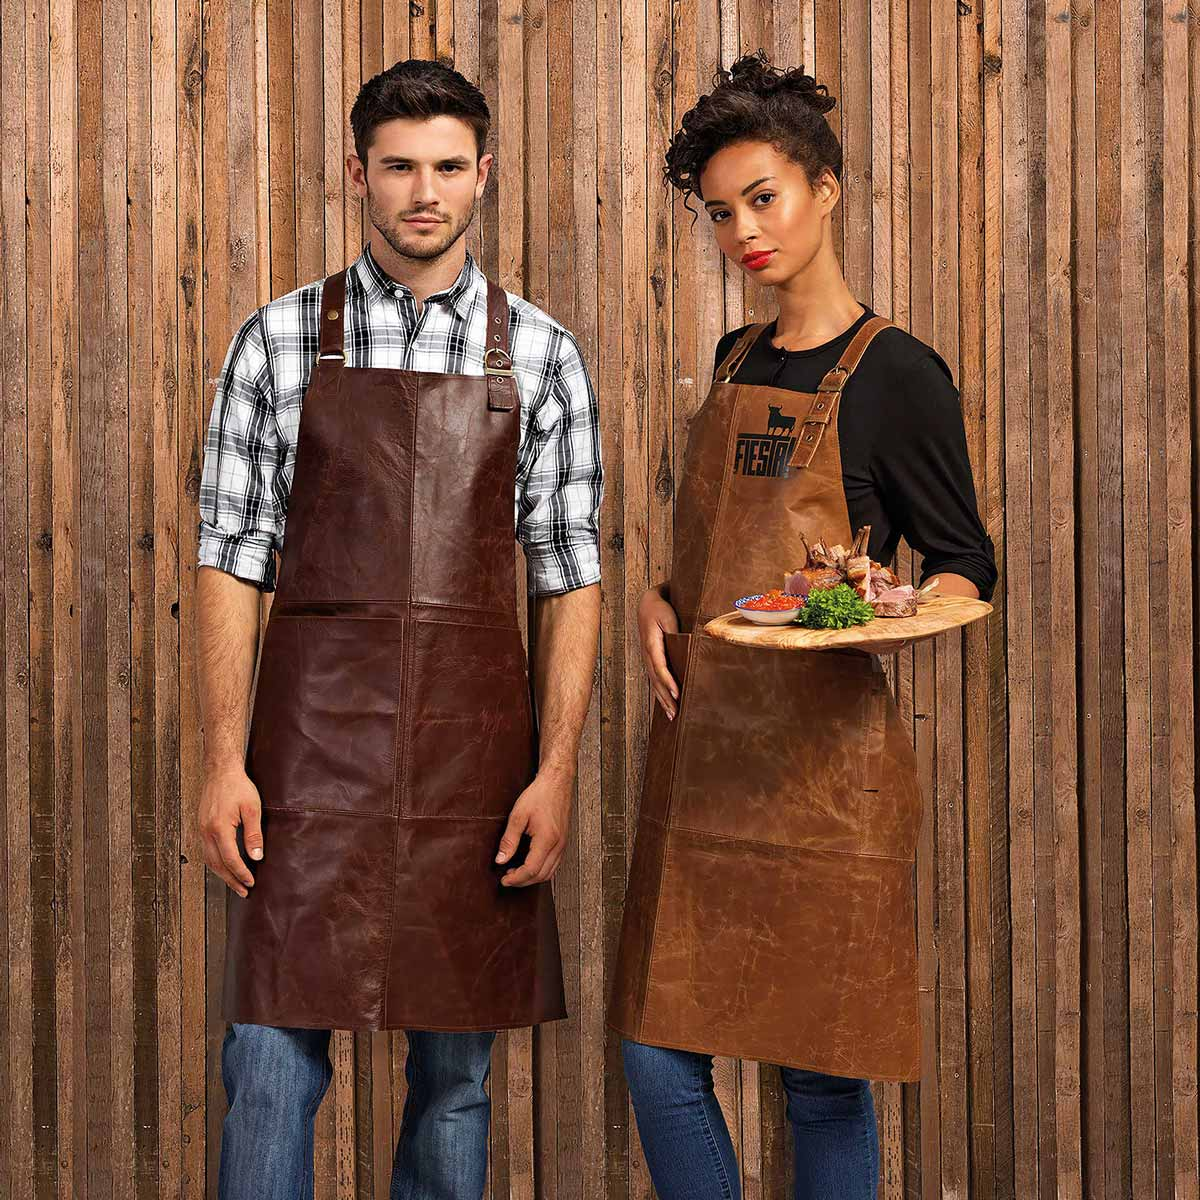 Artisan 100% Leather Cross Back Bib Apron - PR140_BROWN_TAN2